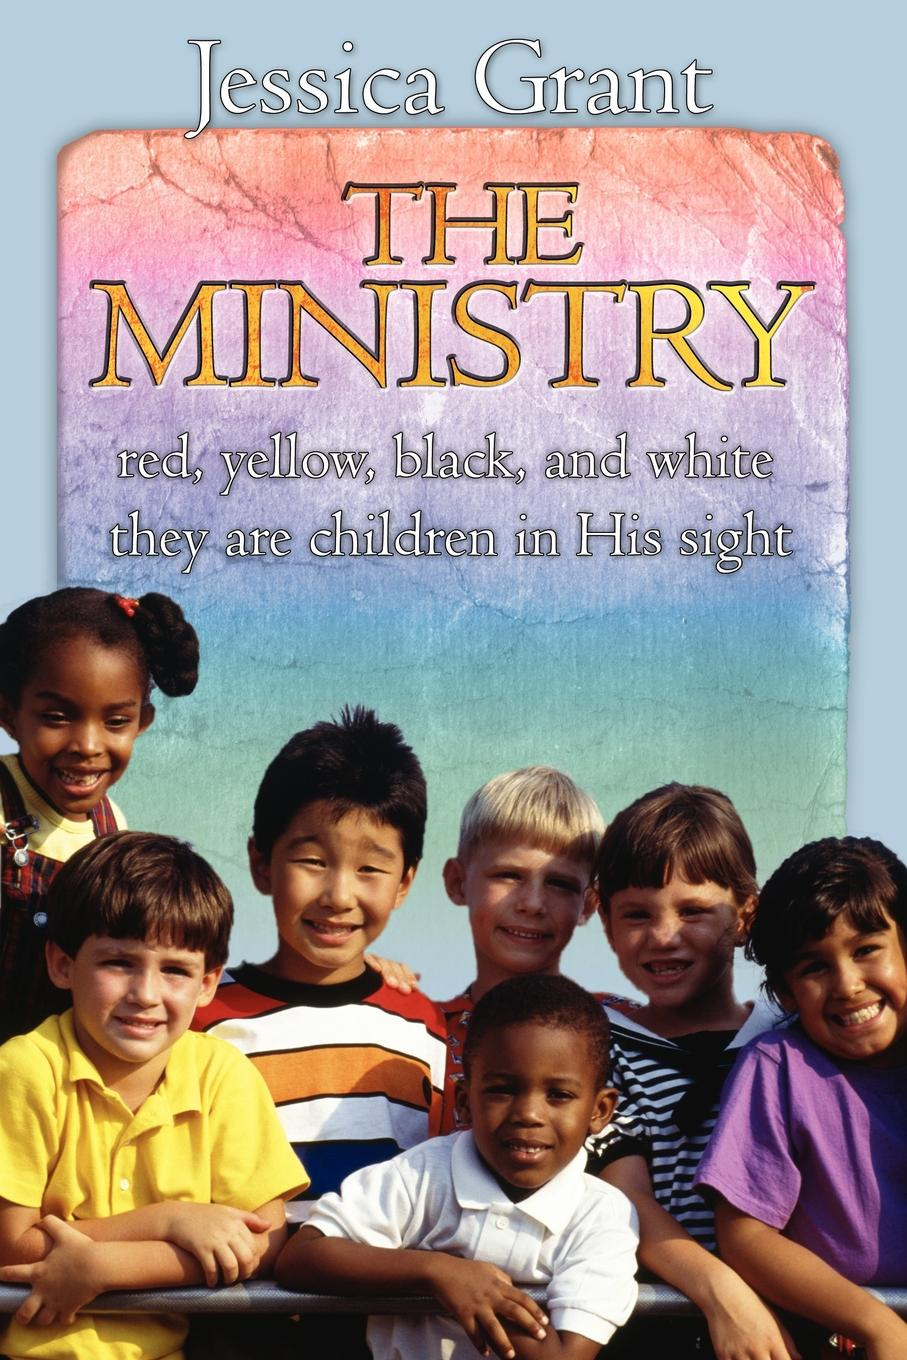 Jessica Grant The Ministry. red, yellow, black, and white they are children in His sight sonex 3254 sn15 066 autunno chrome white red yellow